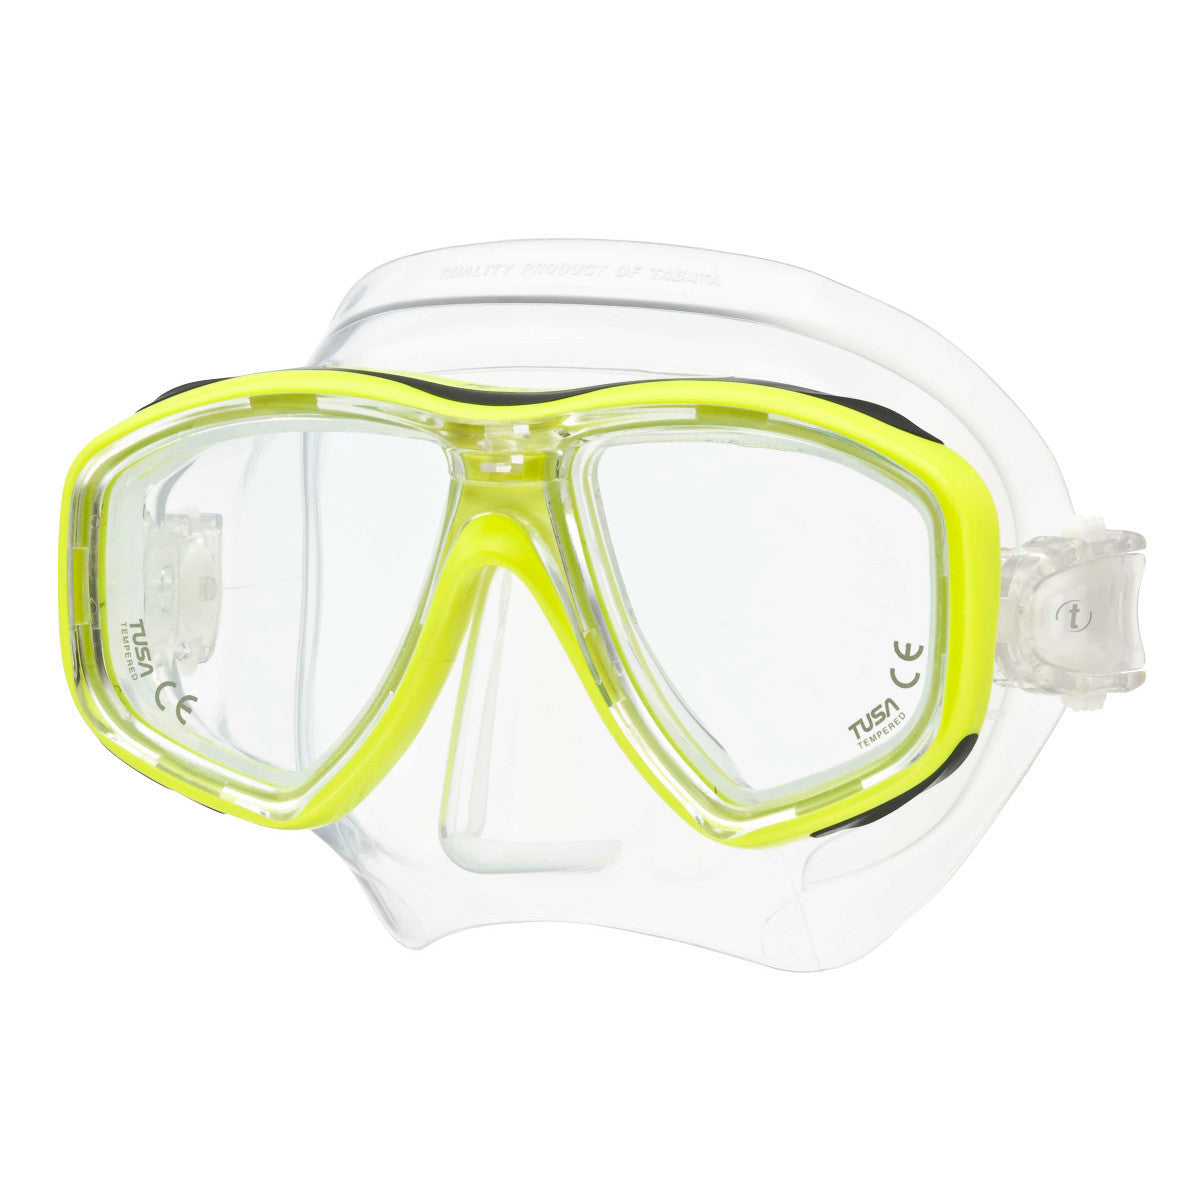 TUSA Geminus Mask - Oyster Diving Shop - 1